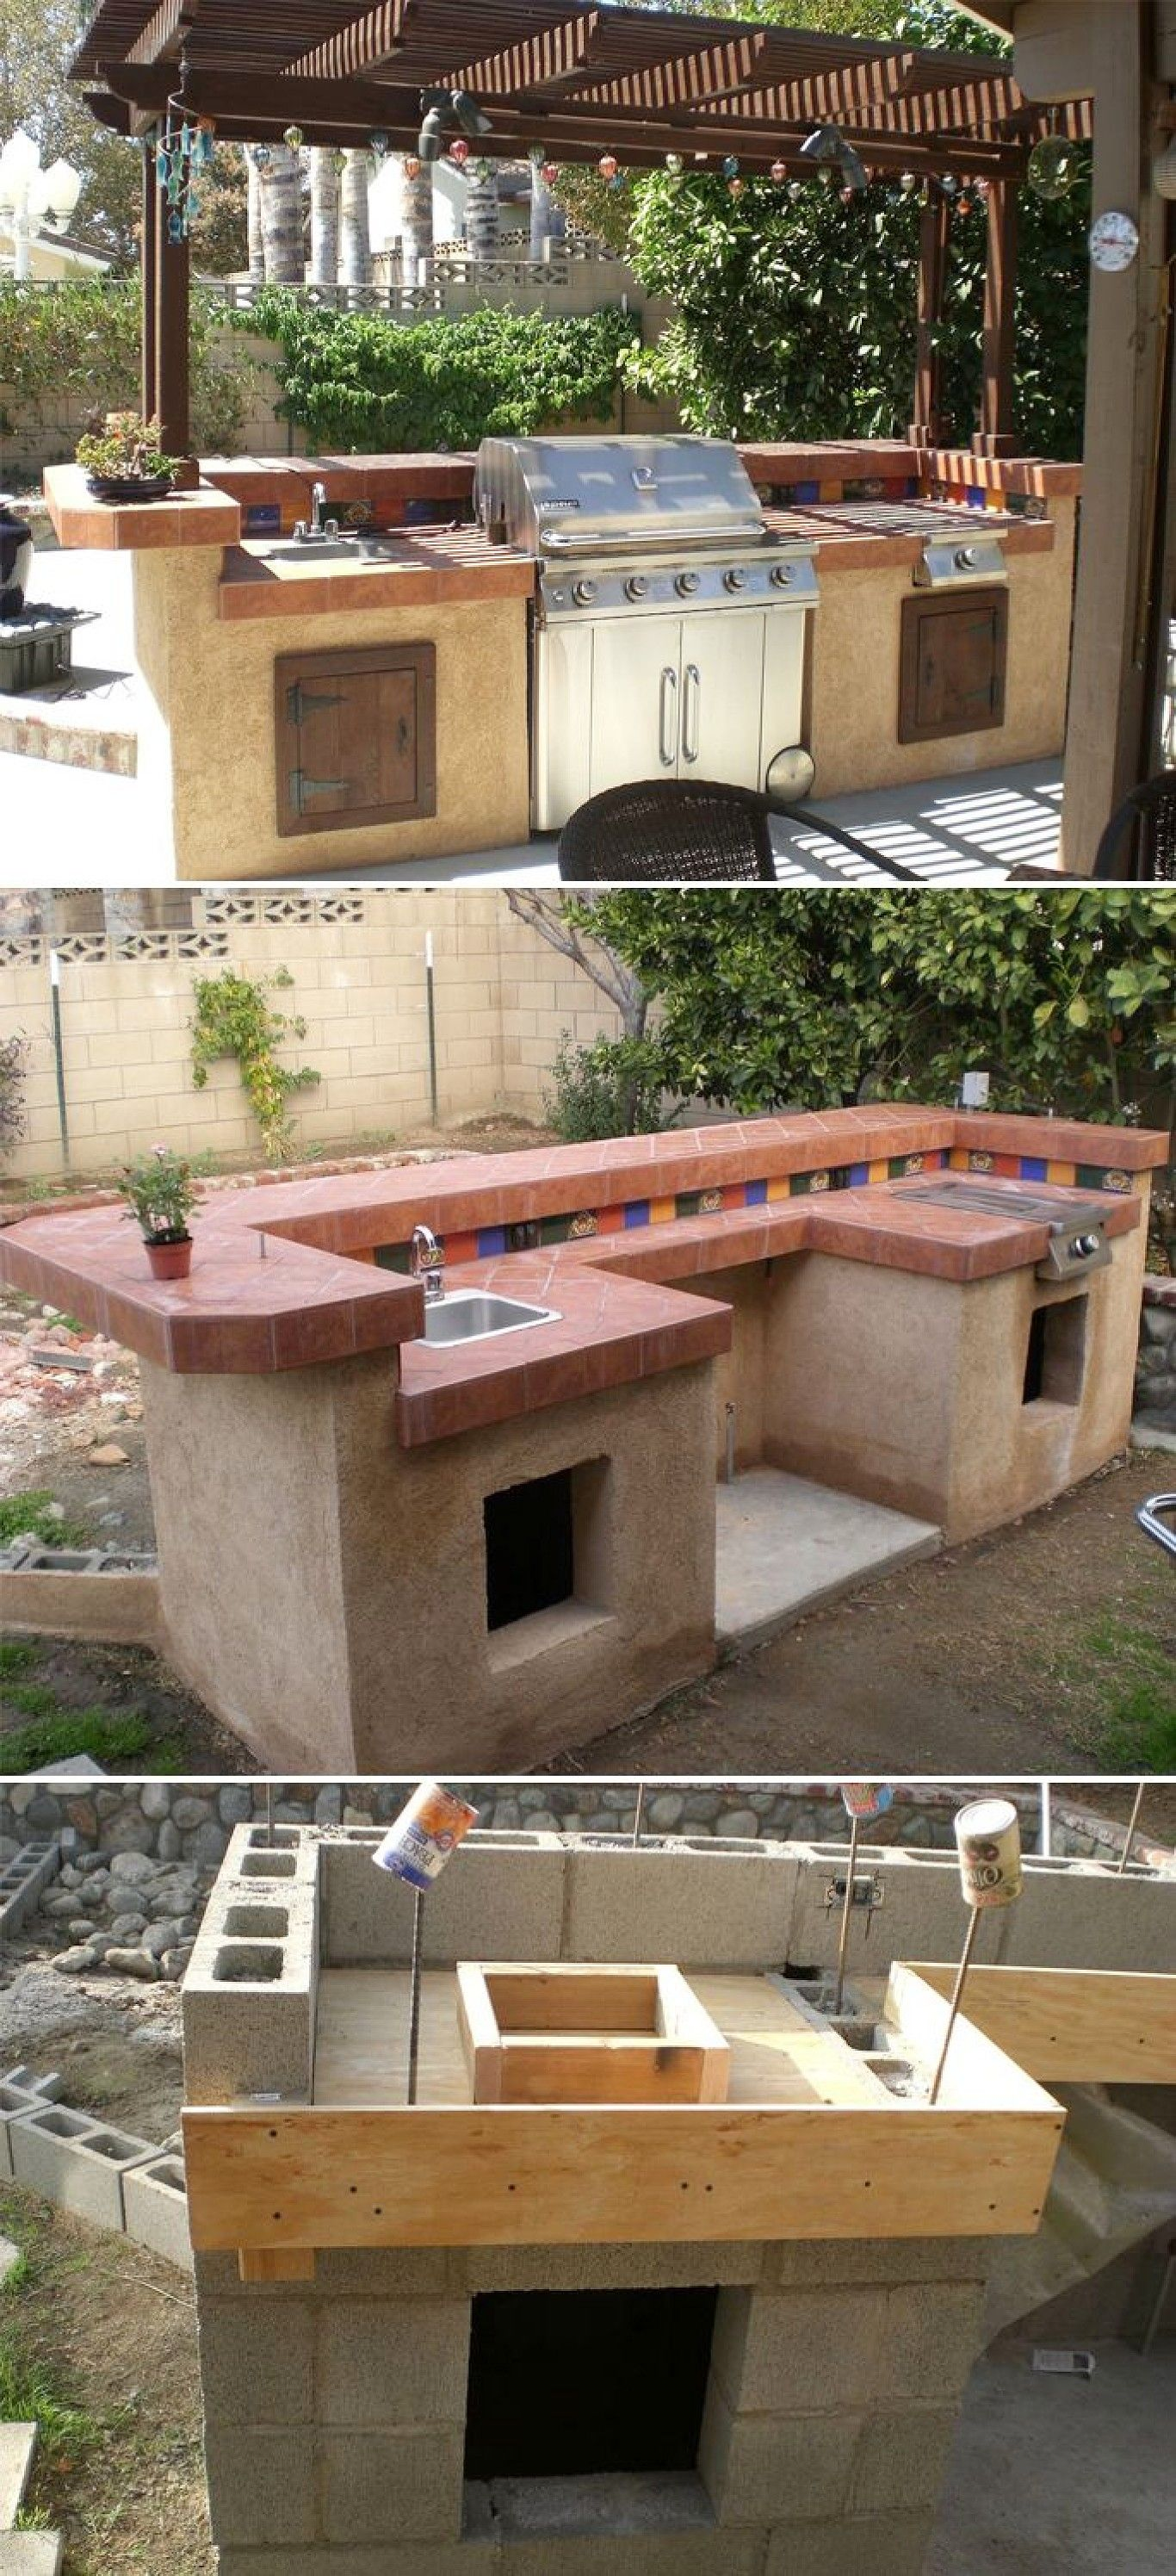 kitchen outdoor bar and grill free outdoor kitchen design software outdoor kitchen floor plans on outdoor kitchen plans layout id=70899